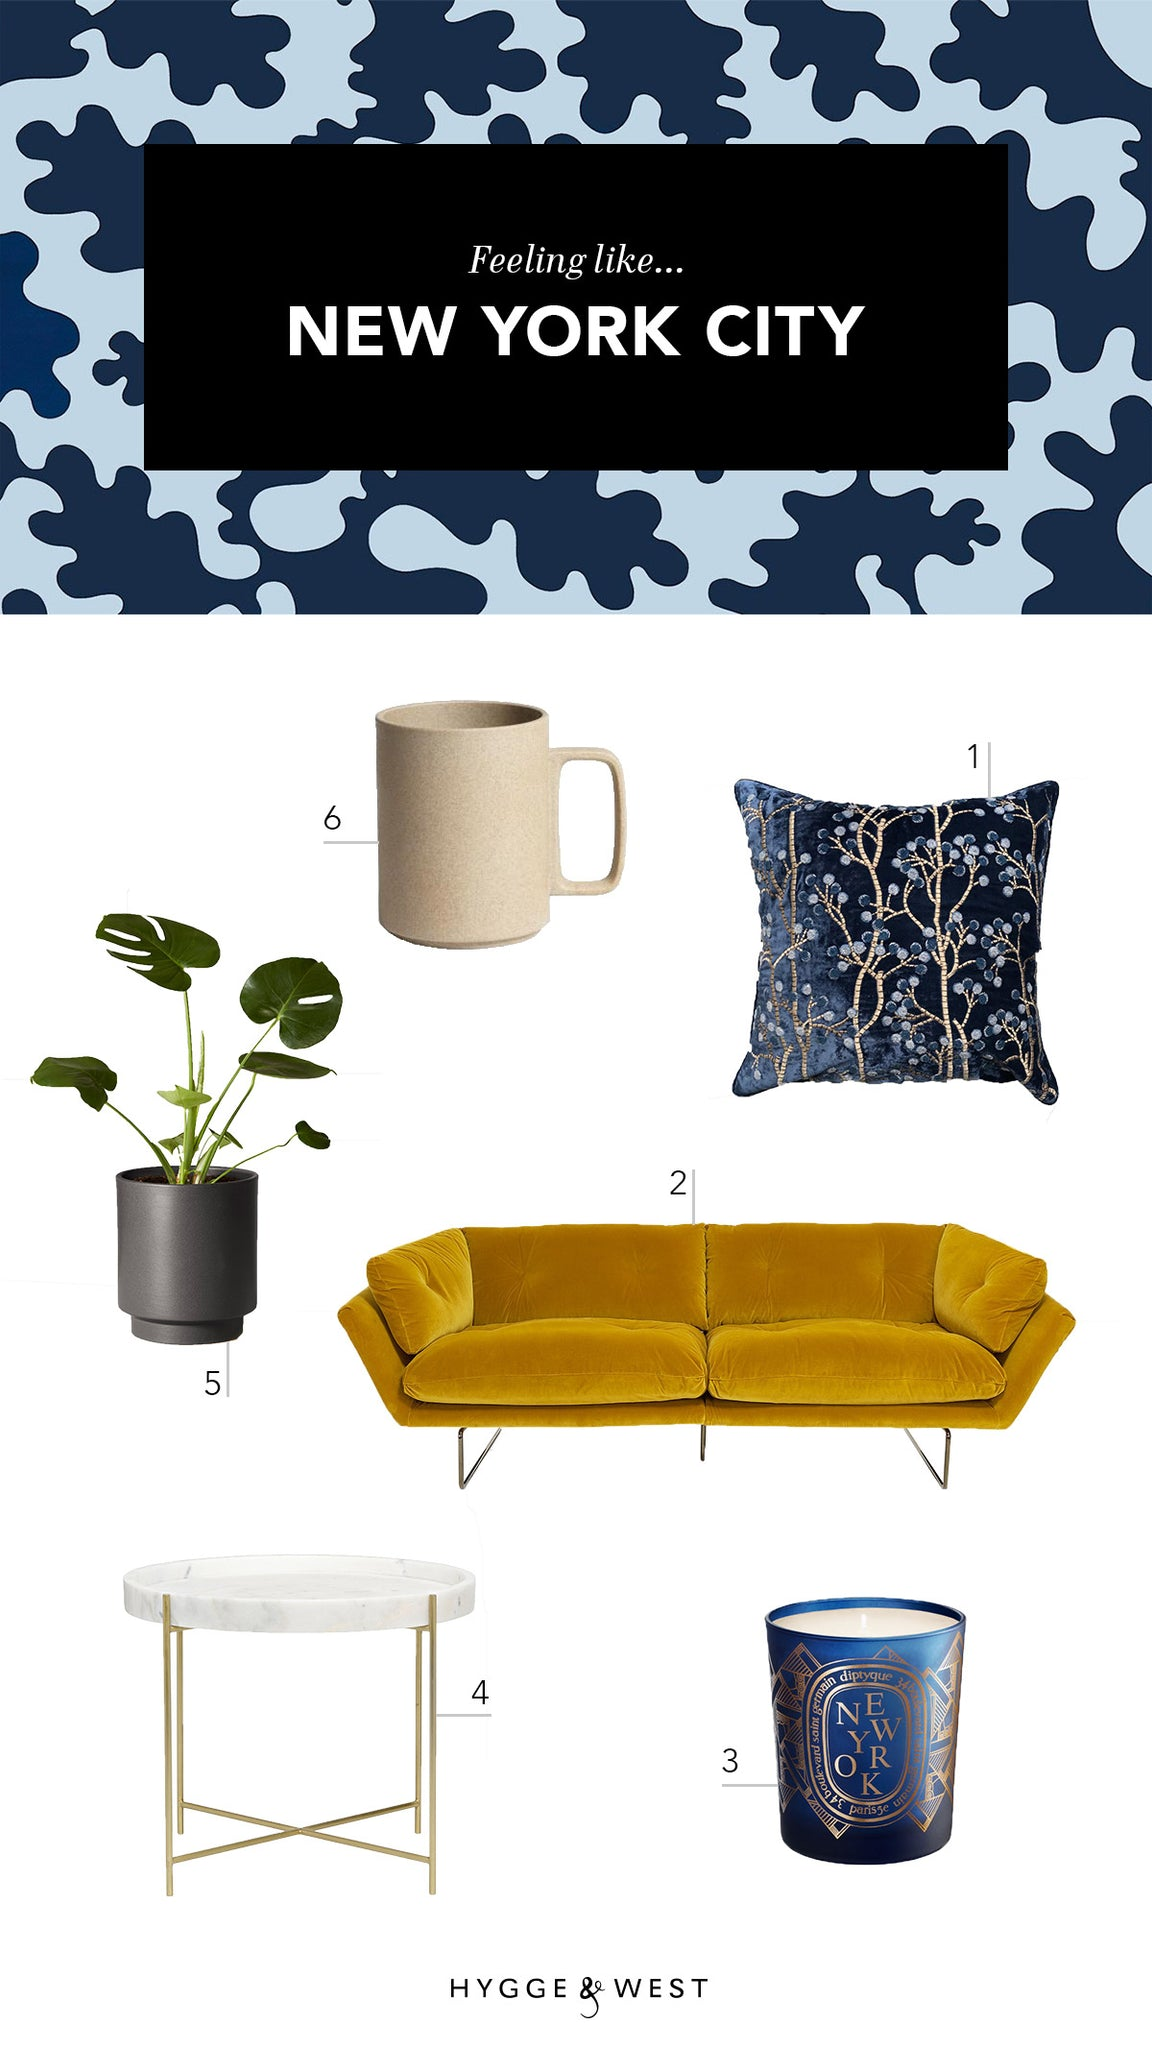 Feeling Like American Cities | Bruno Navy/Sky wallpaper | Tilton Fenwick | Hygge & West